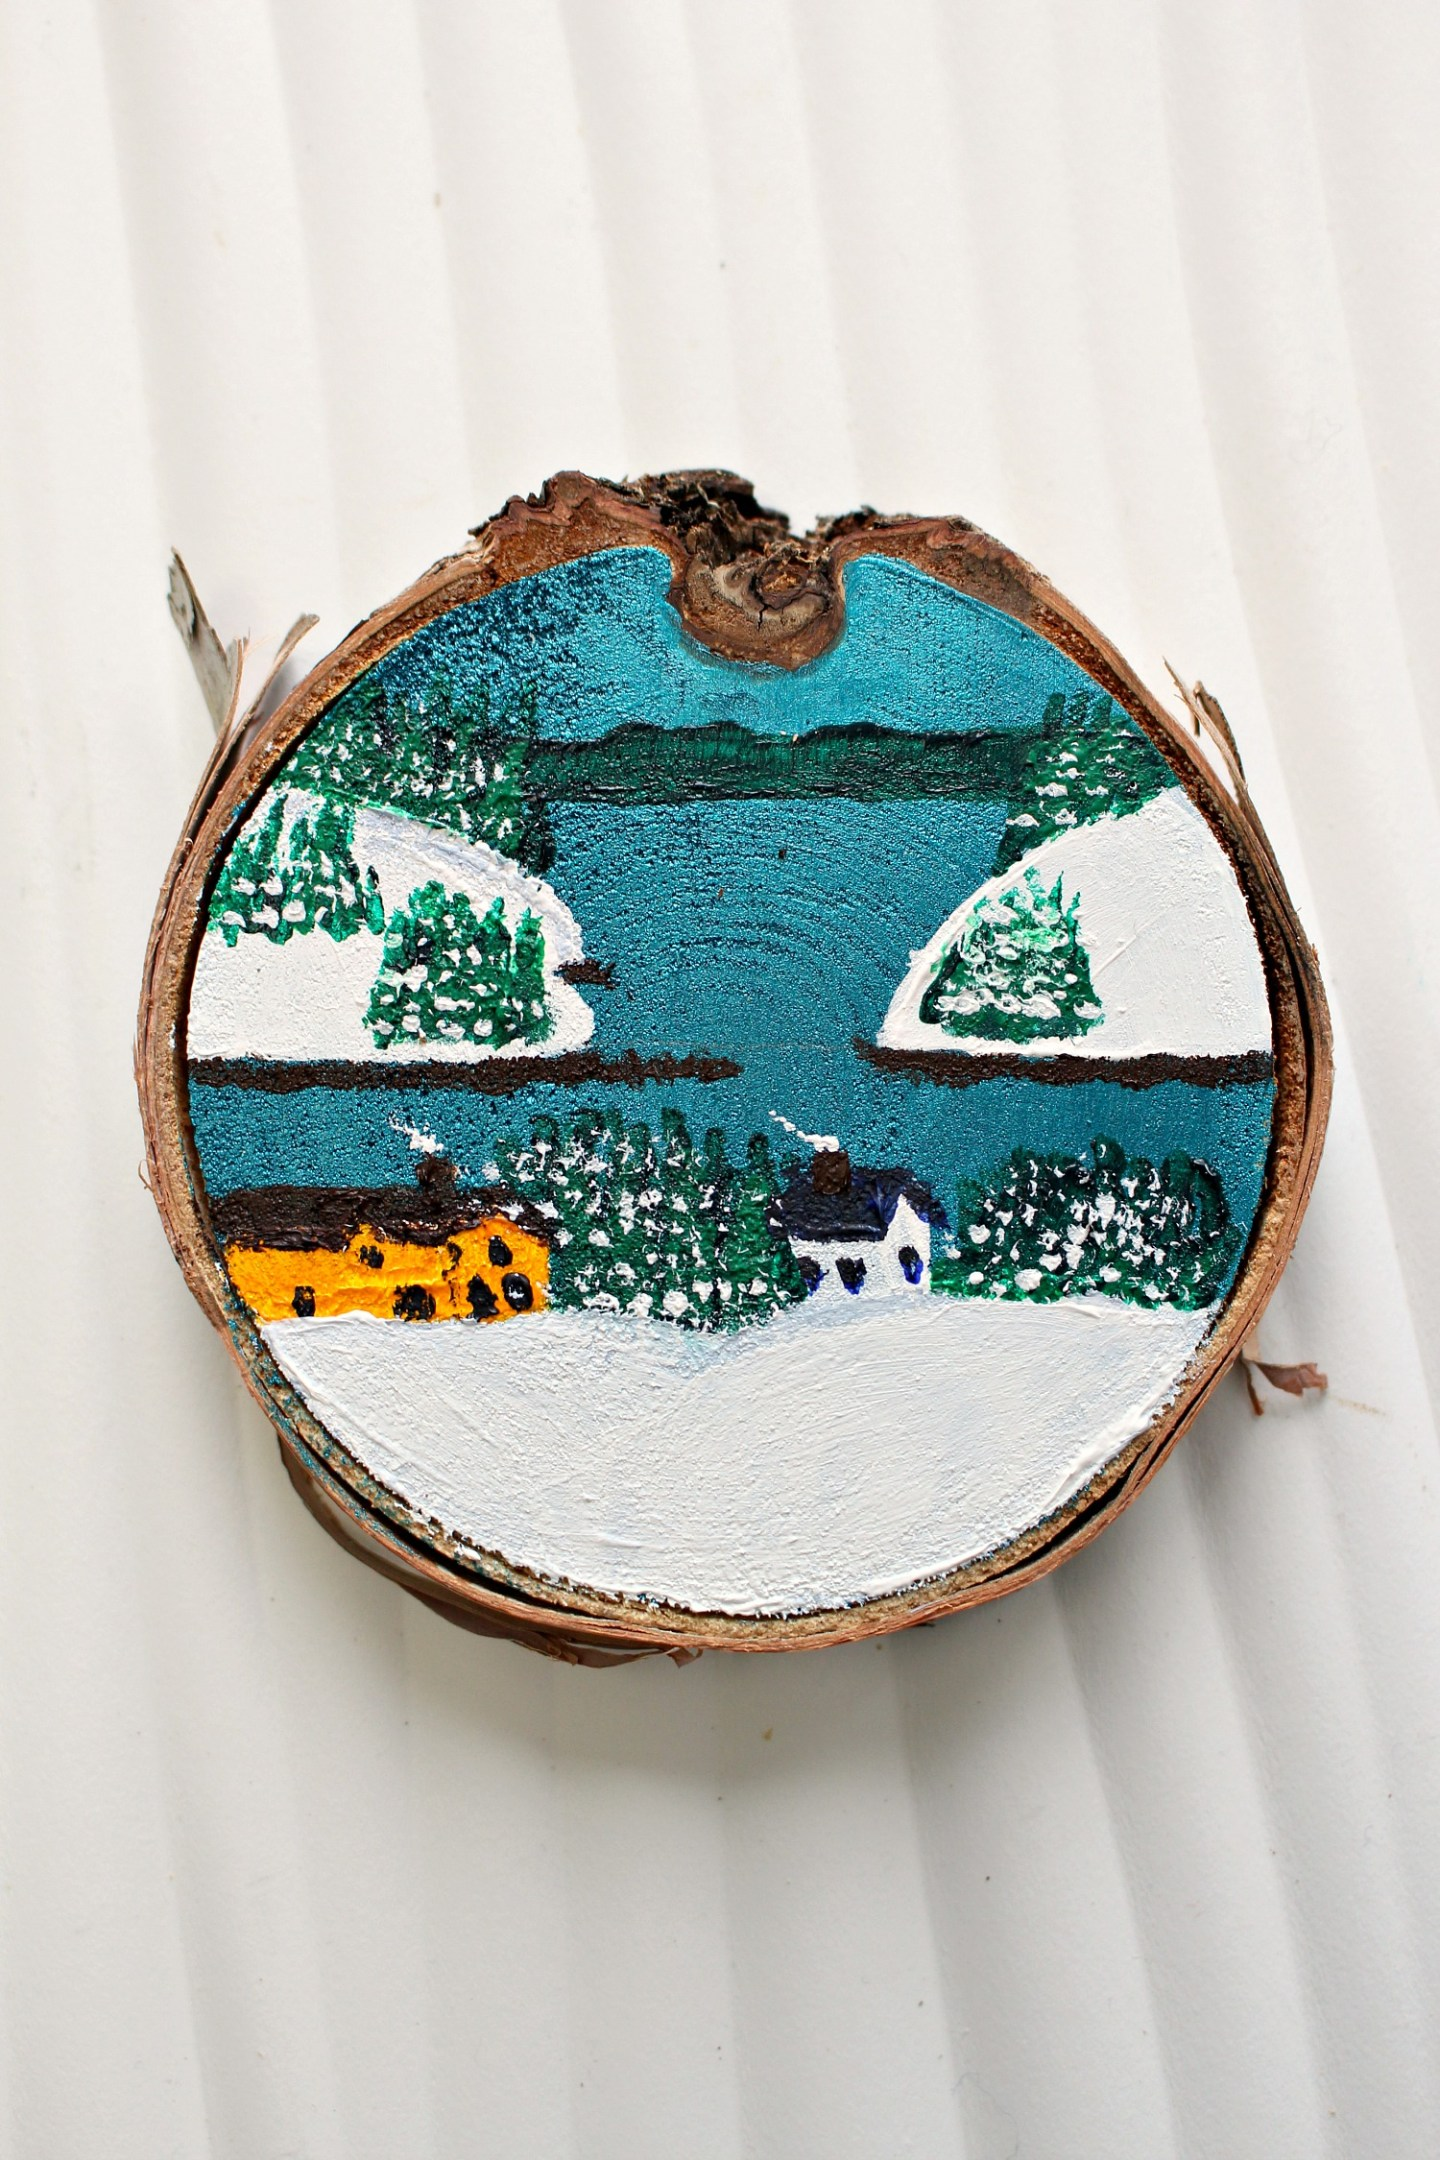 DIY Painted Birch Slice Ornaments (Inspired by Maud Lewis)